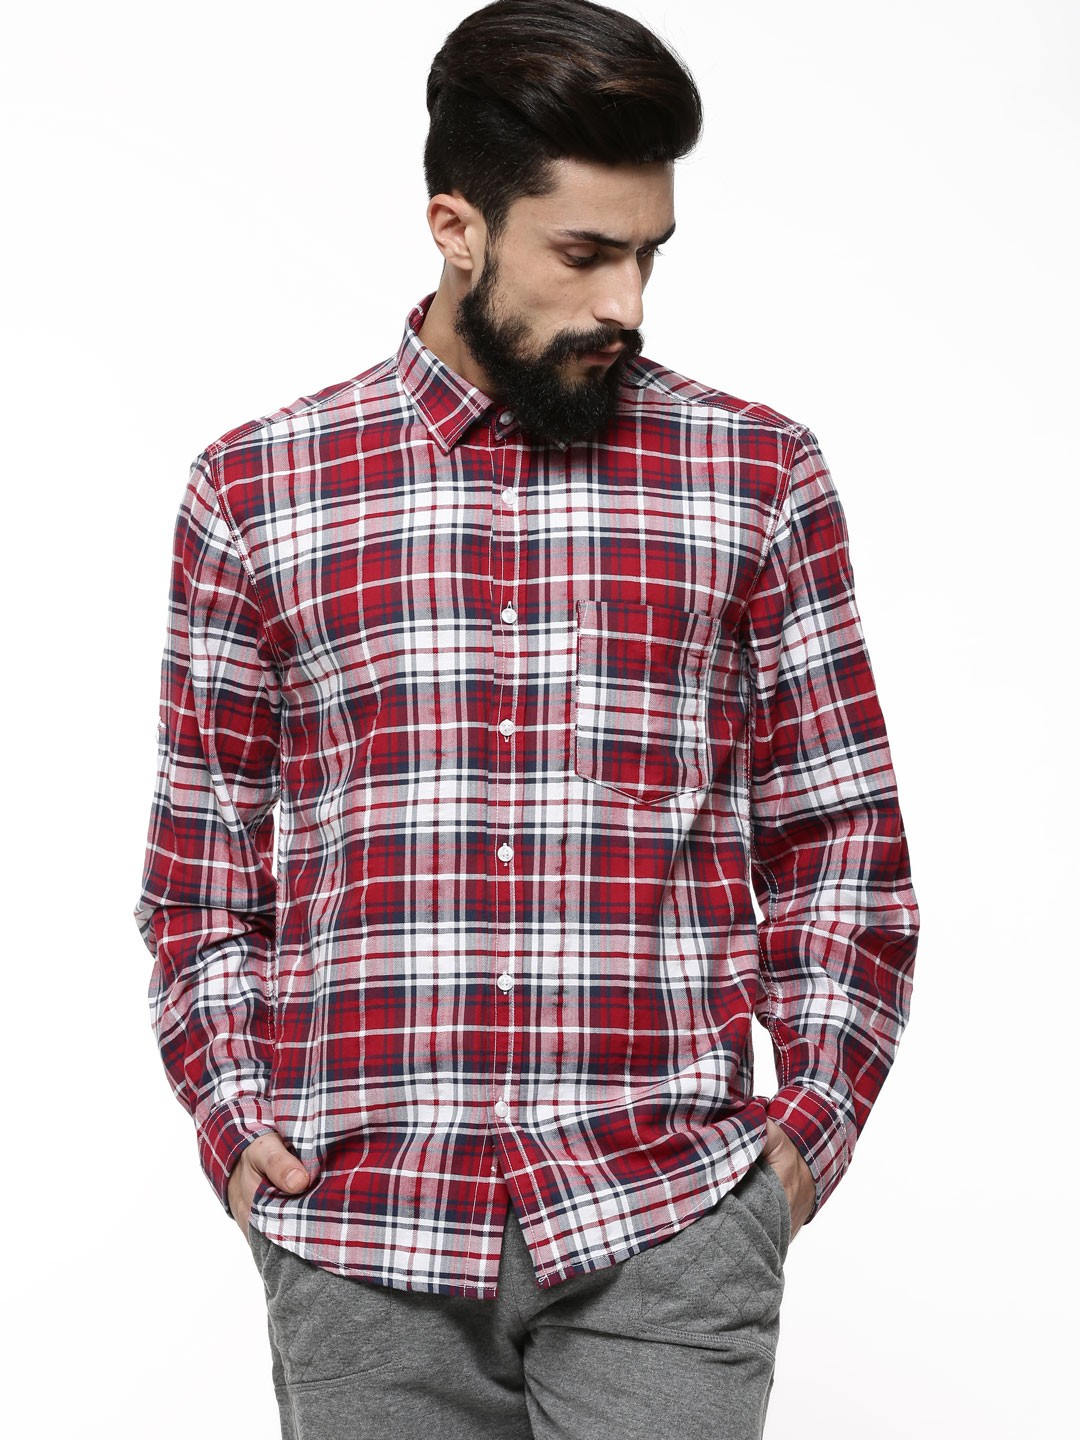 Buy VOI JEANS Premium Brushed Check Shirt For Men - Men's Red ...